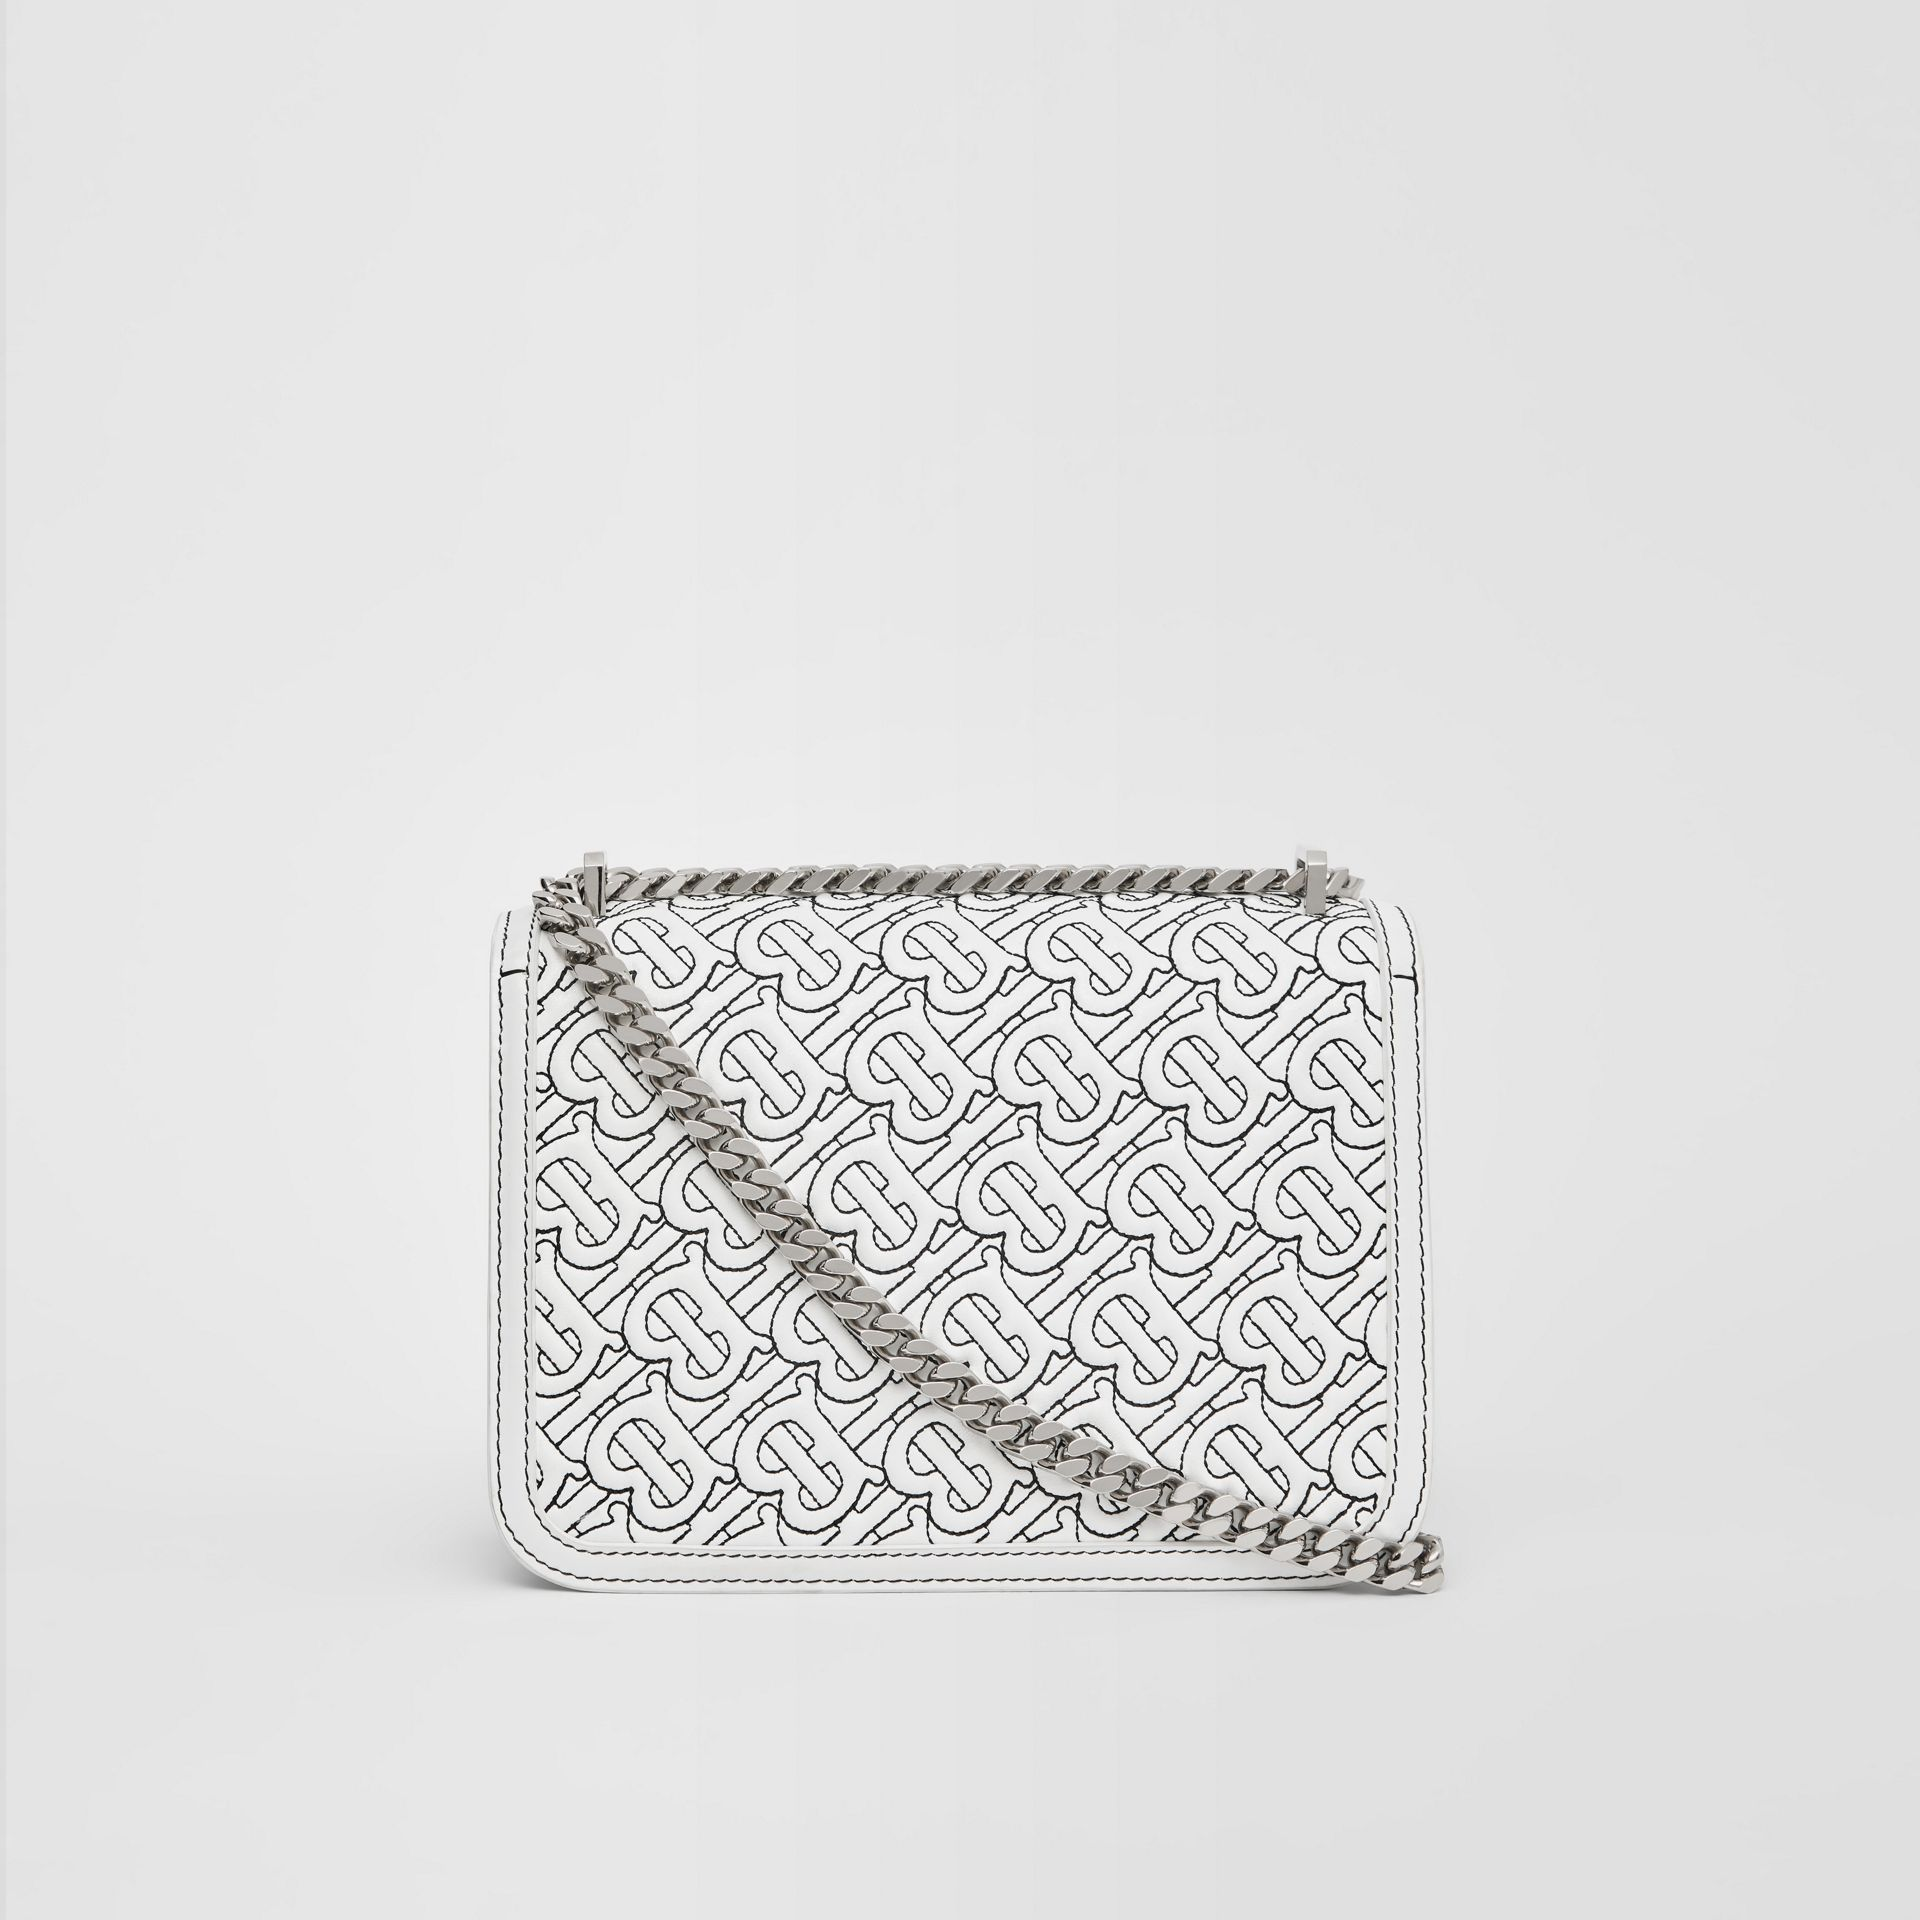 Small Quilted Monogram Lambskin TB Bag in Optic White - Women | Burberry Hong Kong S.A.R. - gallery image 7